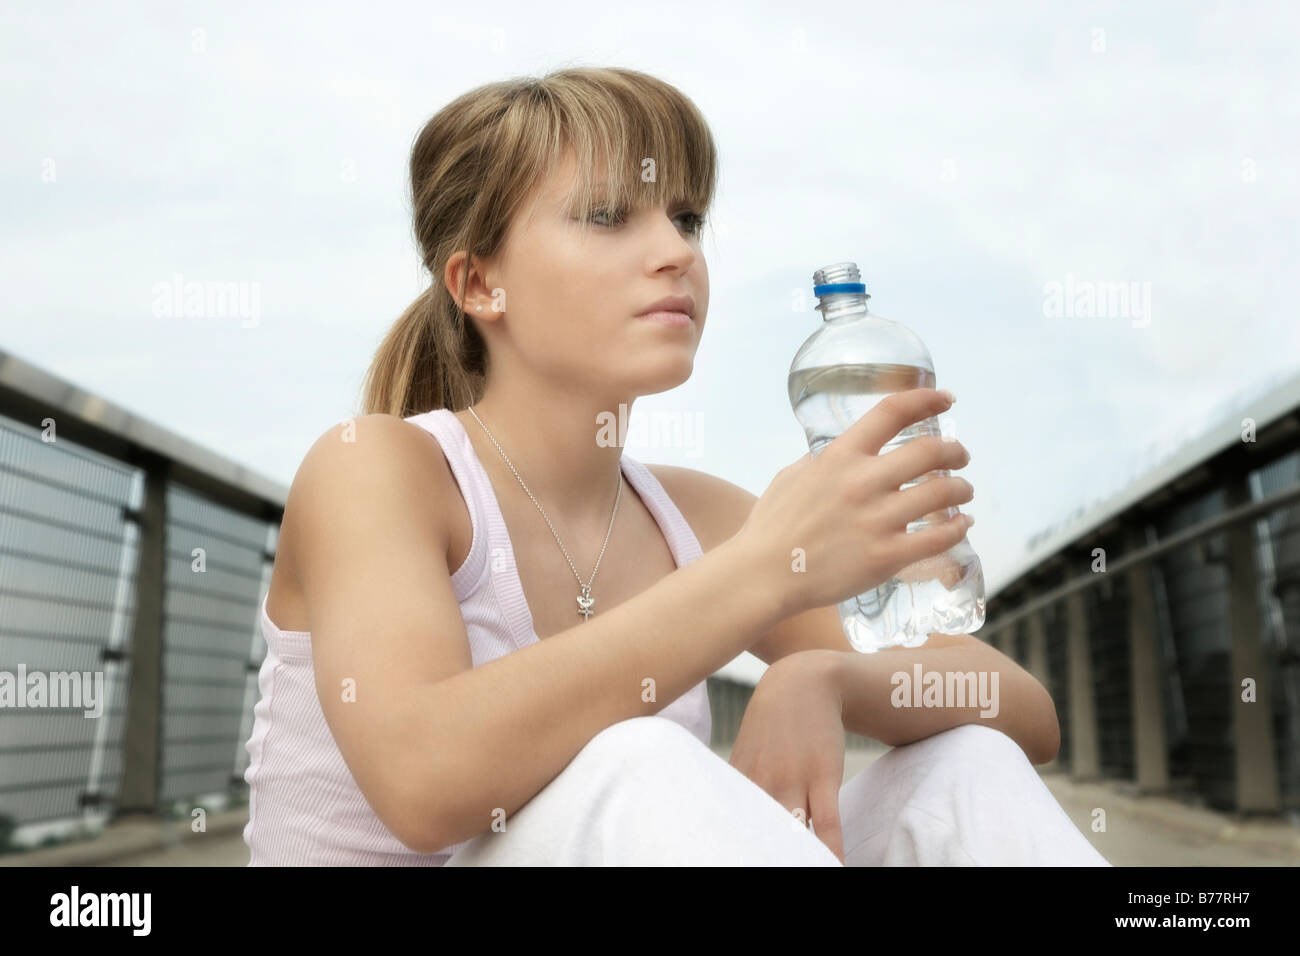 Young woman with a bottle of water quenching her thirst after doing sport - Stock Image